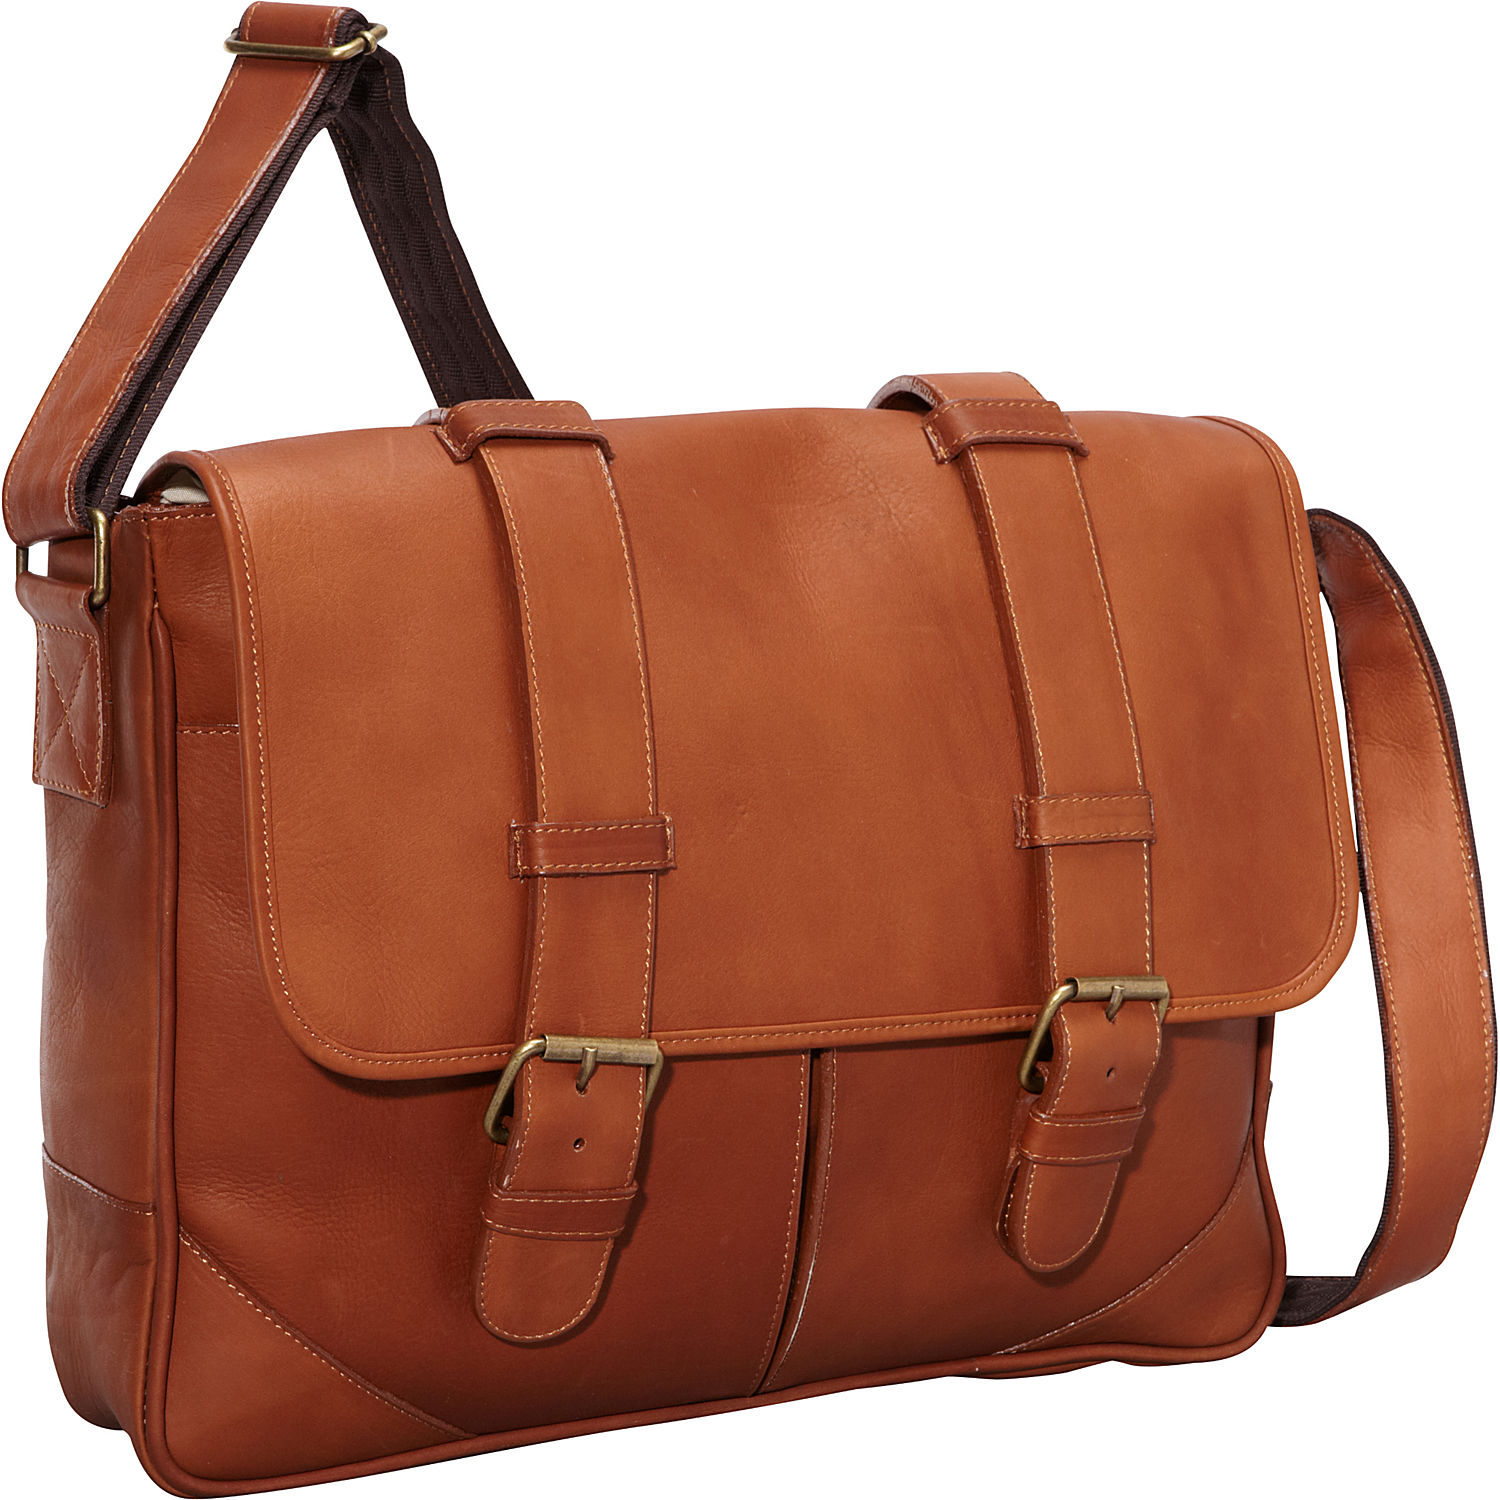 ClaireChase Sorrento Laptop Messenger Bag - eBags.com